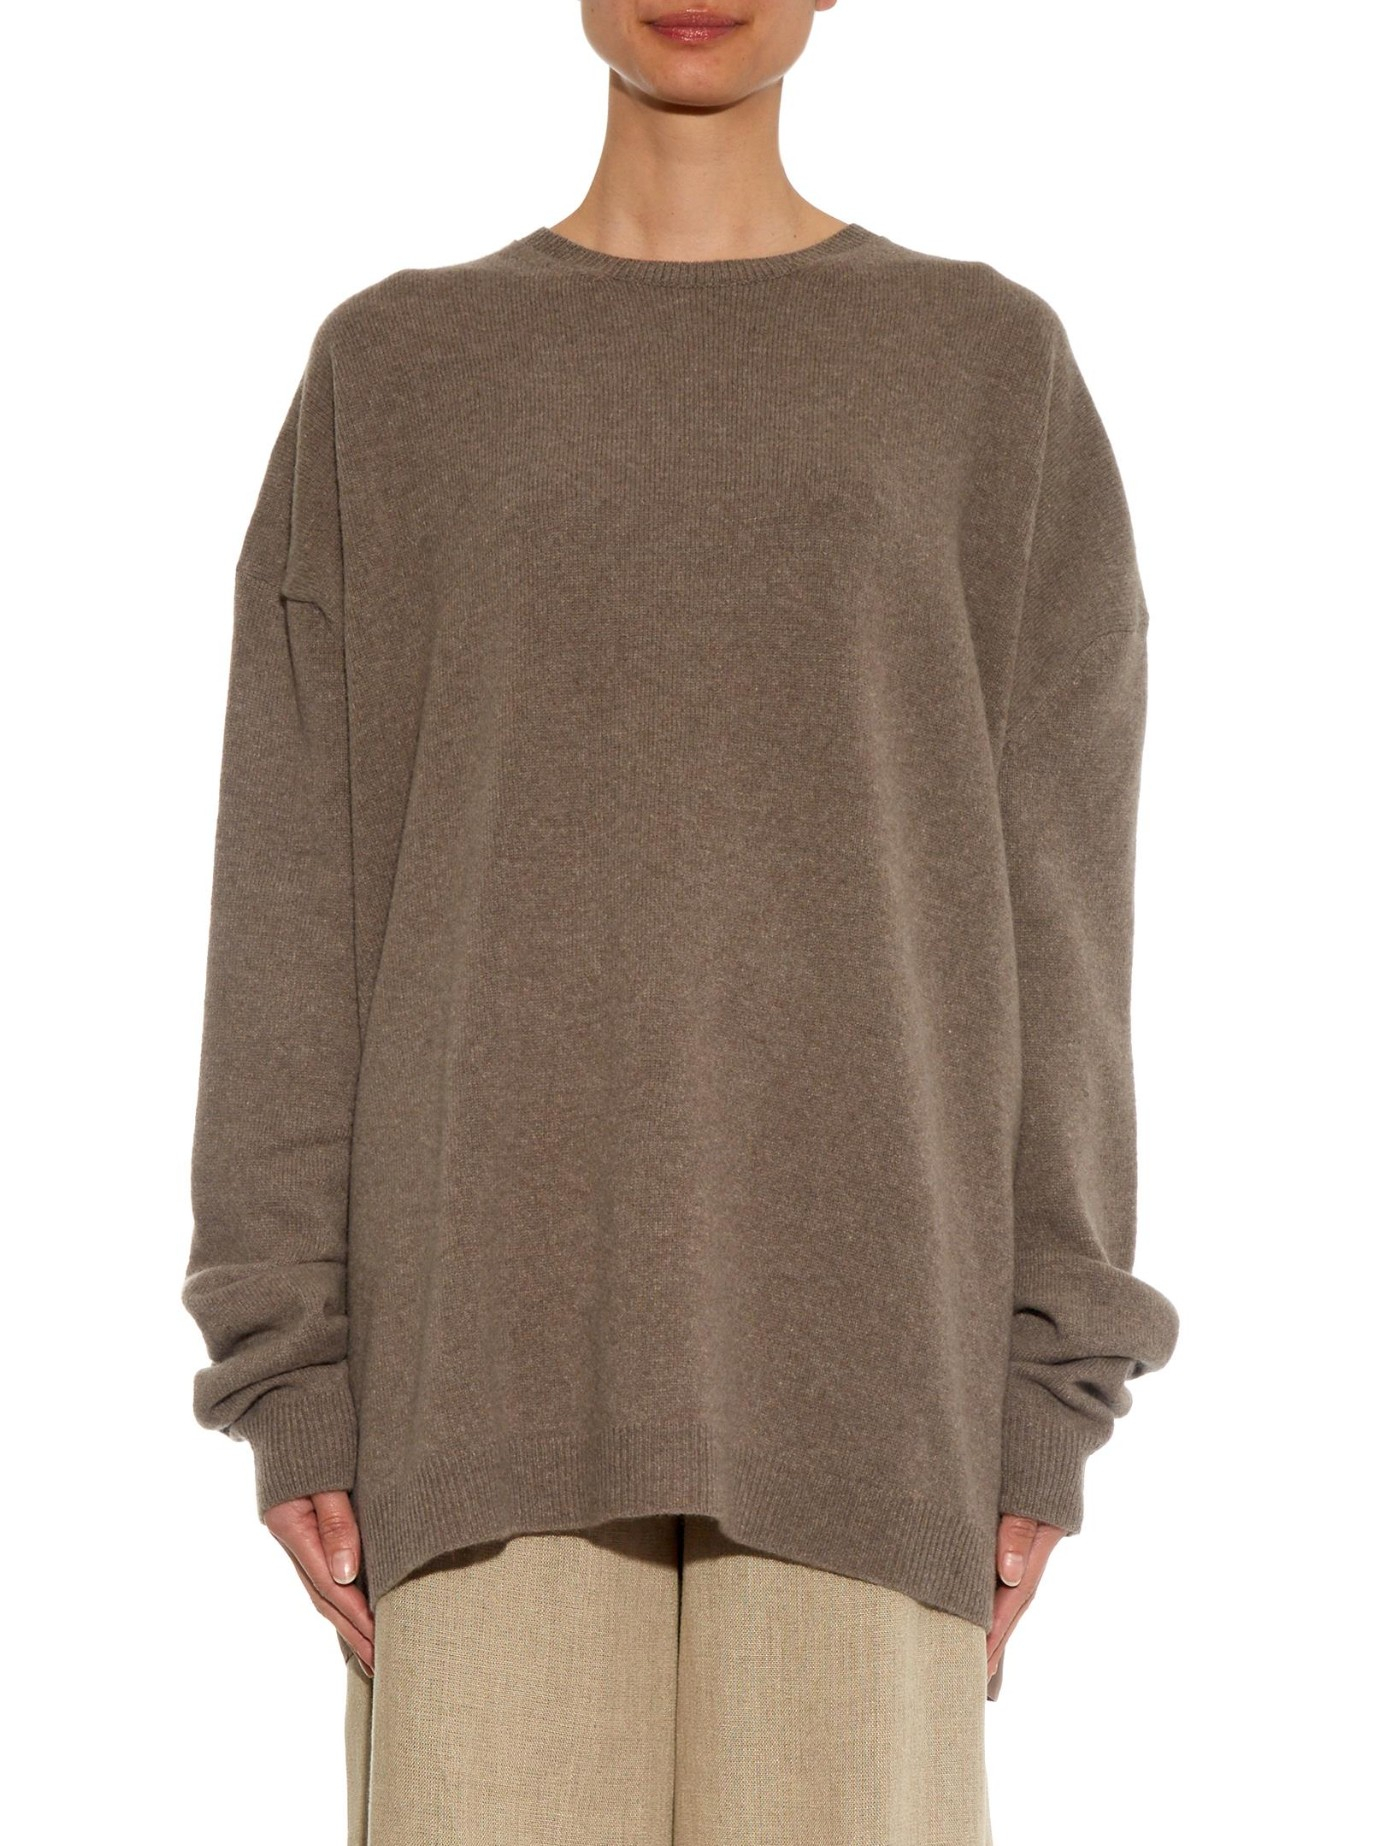 Haider Ackermann Fine Knit Wool And Cashmere Blend Sweater In Light Brown Brown Lyst